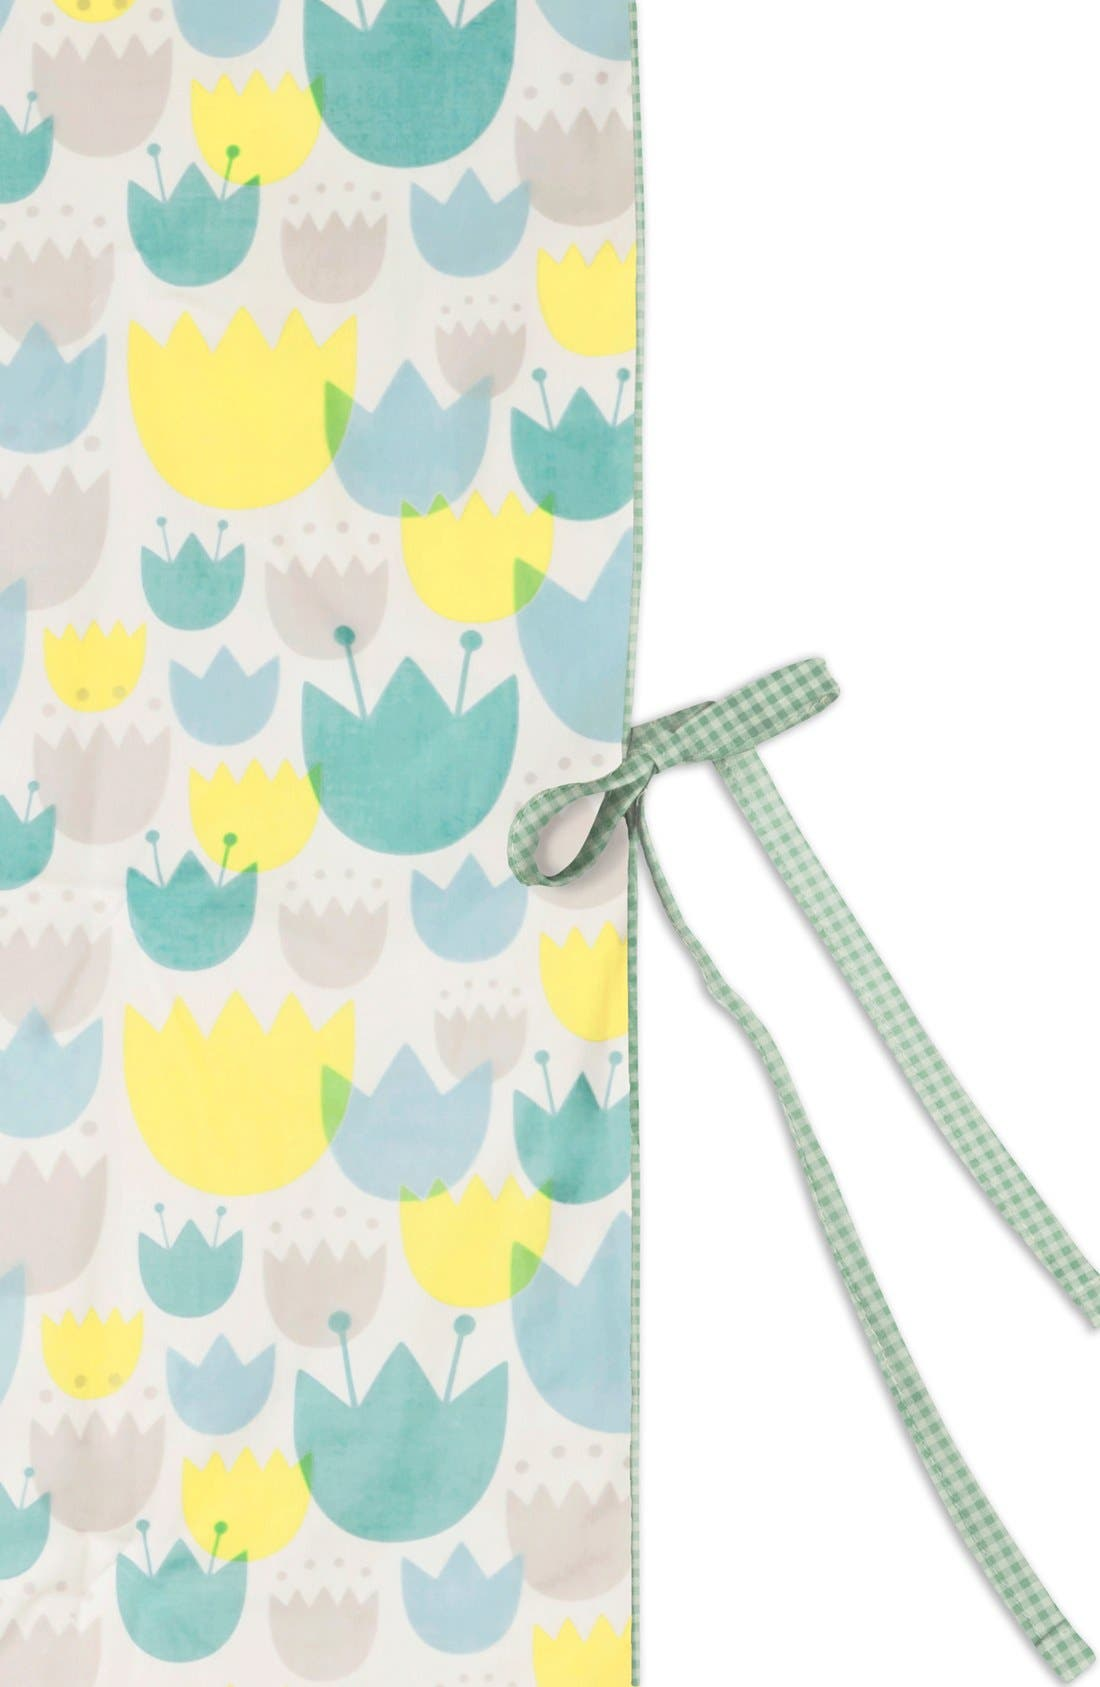 'Garden' Mini Crib Sheet, Changing Pad Cover, Stroller Blanket & Wall Decals,                             Alternate thumbnail 5, color,                             BLUE